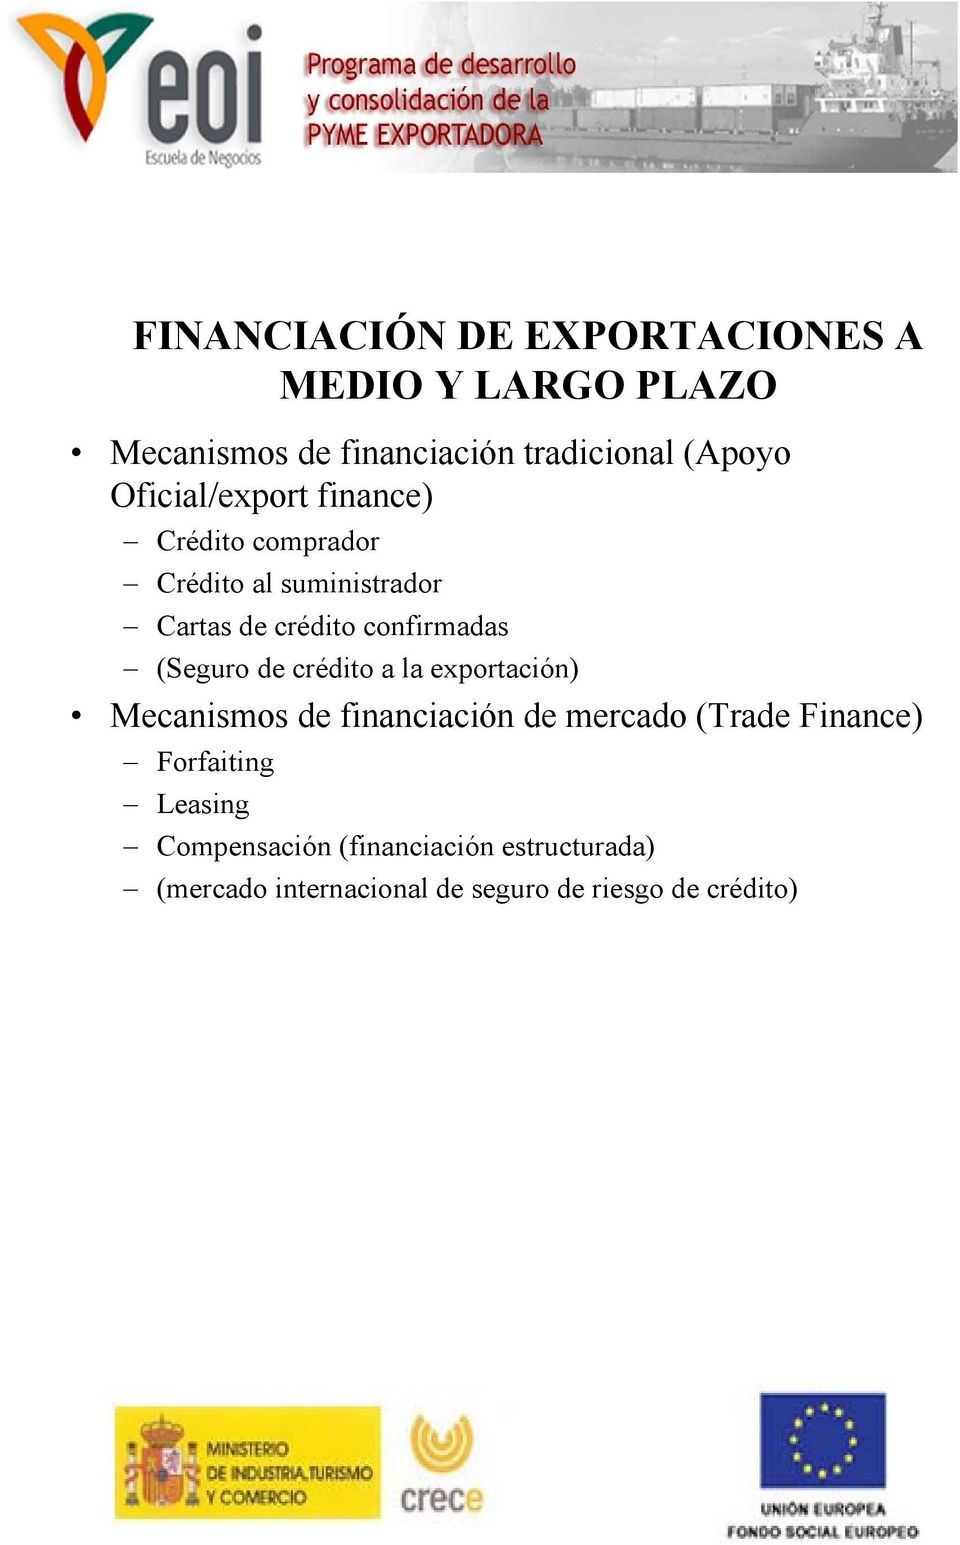 (Seguro de crédito a la exportación) Mecanismos de financiación de mercado (Trade Finance)